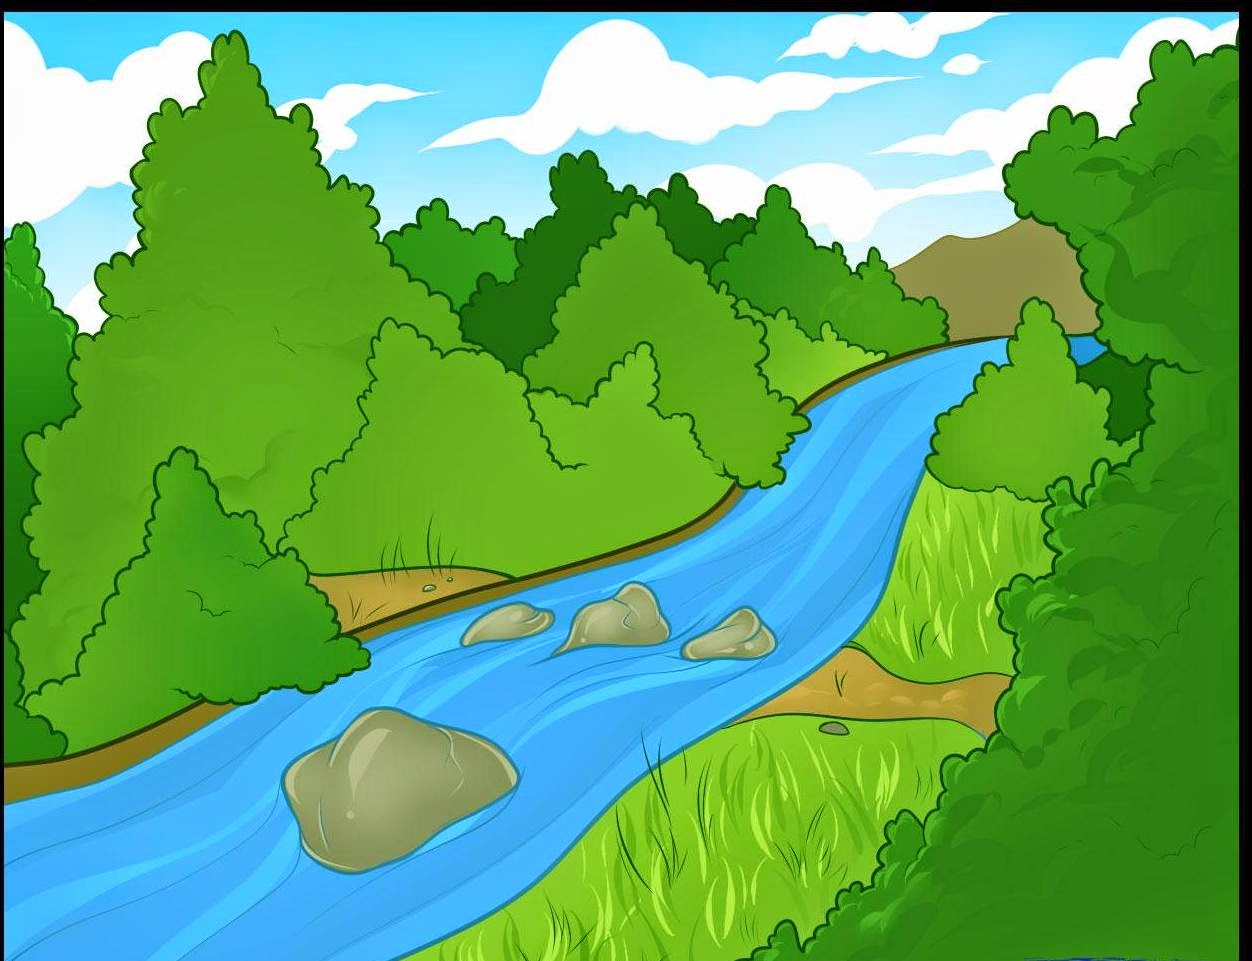 Clipart of a river image transparent stock River Clipart | Clipart Panda - Free Clipart Images image transparent stock